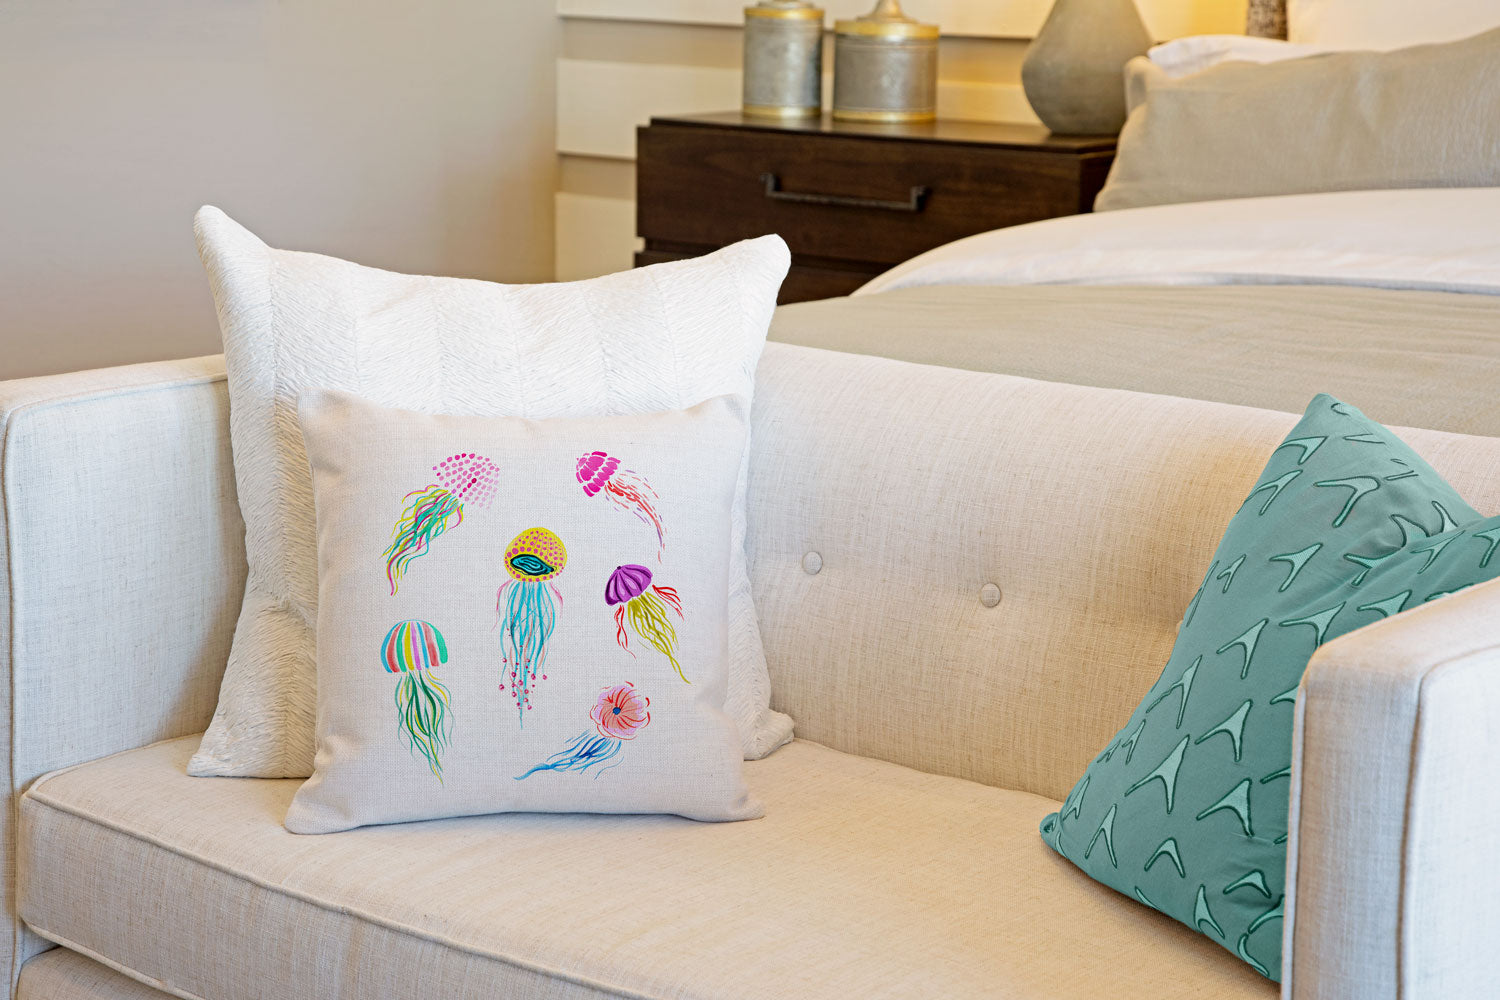 Jellyfish Throw Pillow Cover - Coastal Designs Throw Pillow Cover Collection-Di Lewis